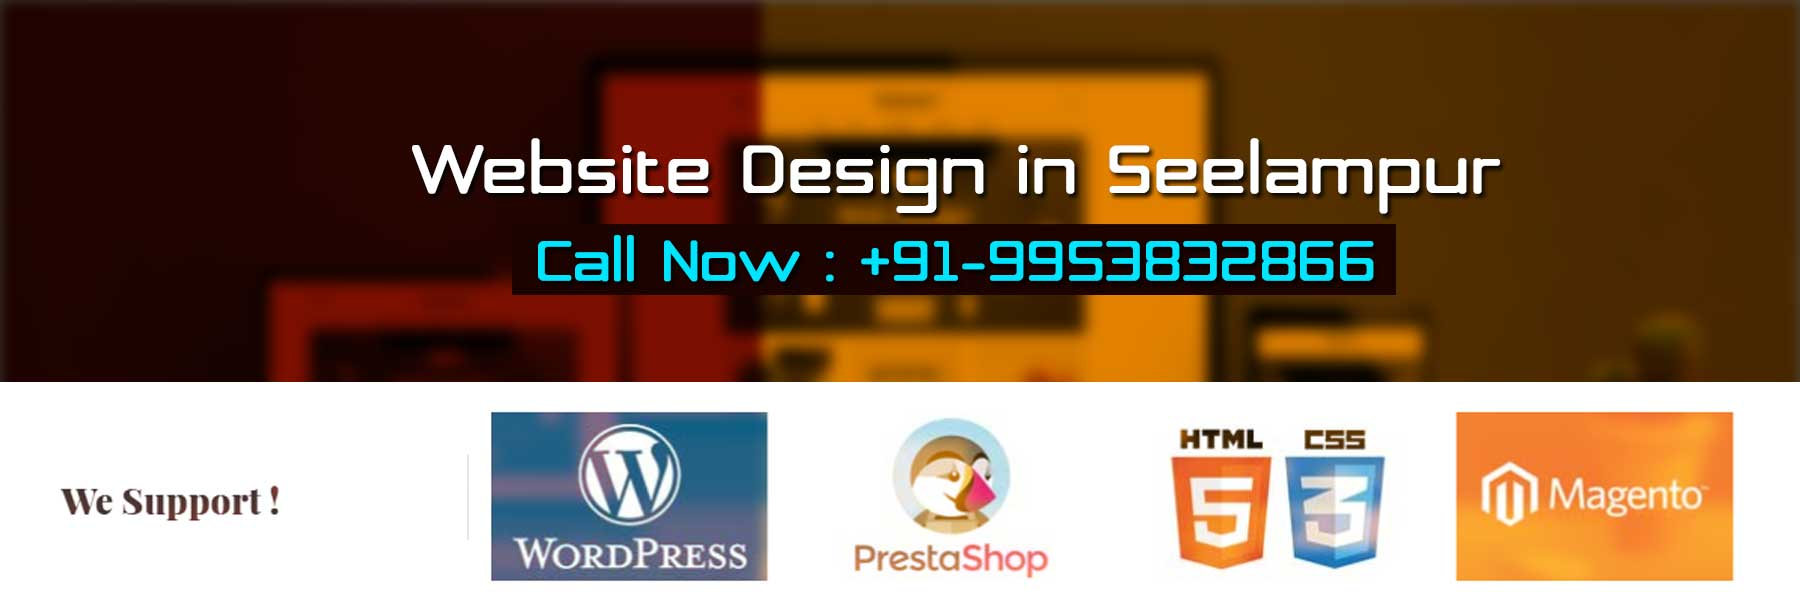 Website Design in Seelampur